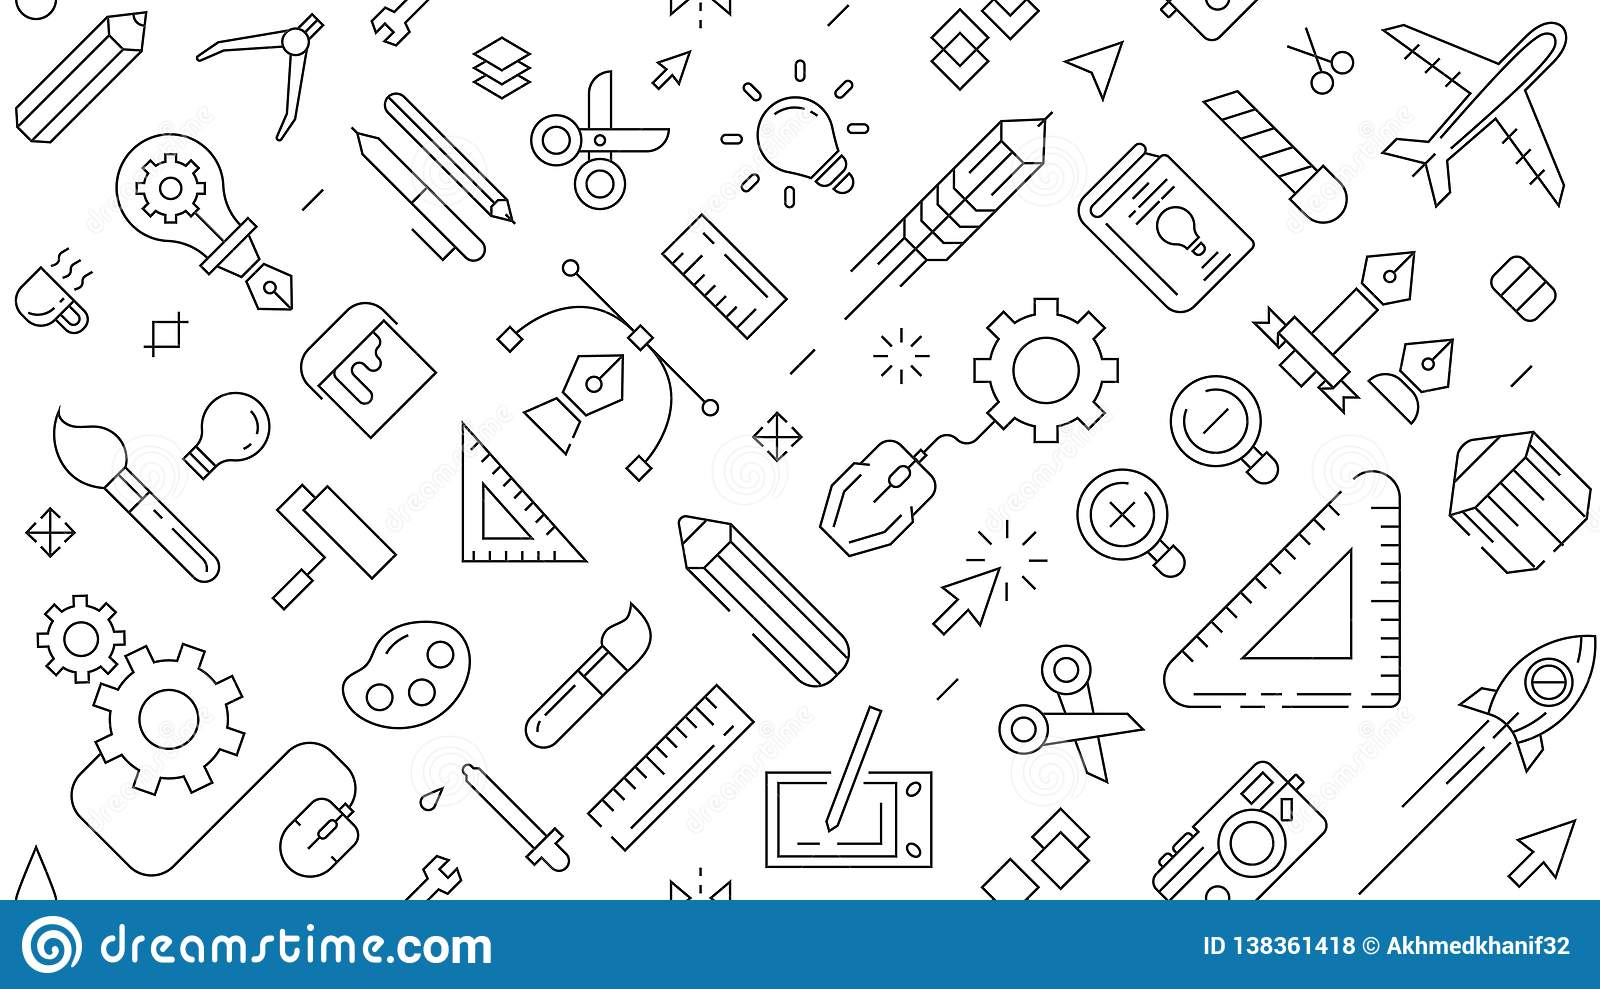 Landscape Pattern With Design Theme Vector Modern Doodle Style Background About Graphic Design Industry And Creative Business Stock Vector Illustration Of Doodle Mouse 138361418